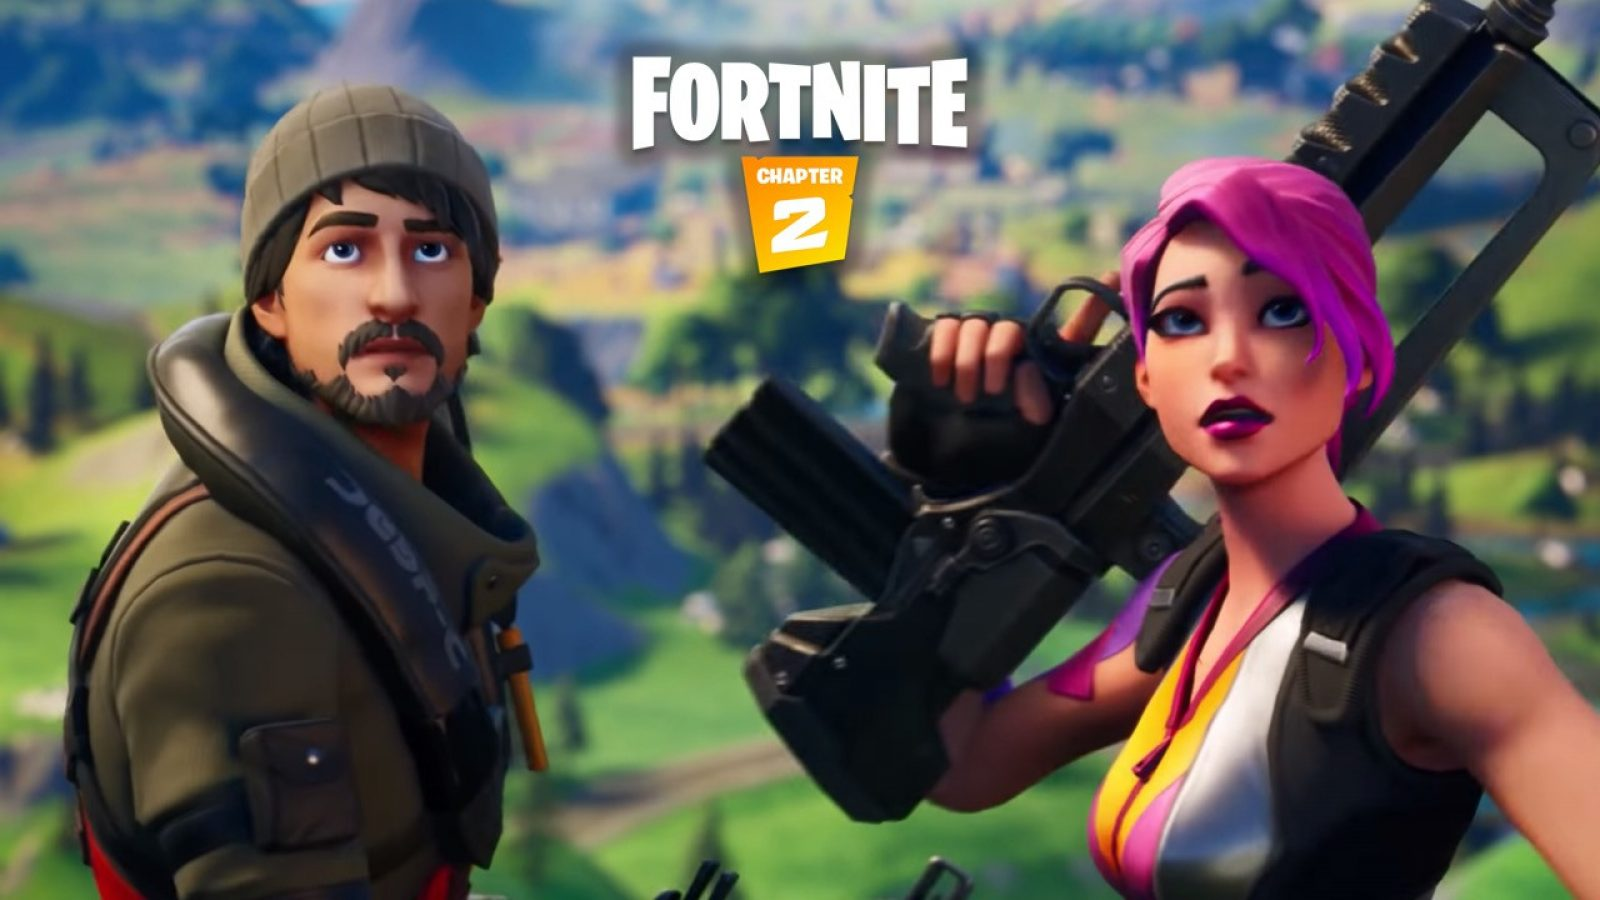 Leaked Fortnite Chapter 2 Skins And Cosmetics Dexerto (season 2) see more ». leaked fortnite chapter 2 skins and